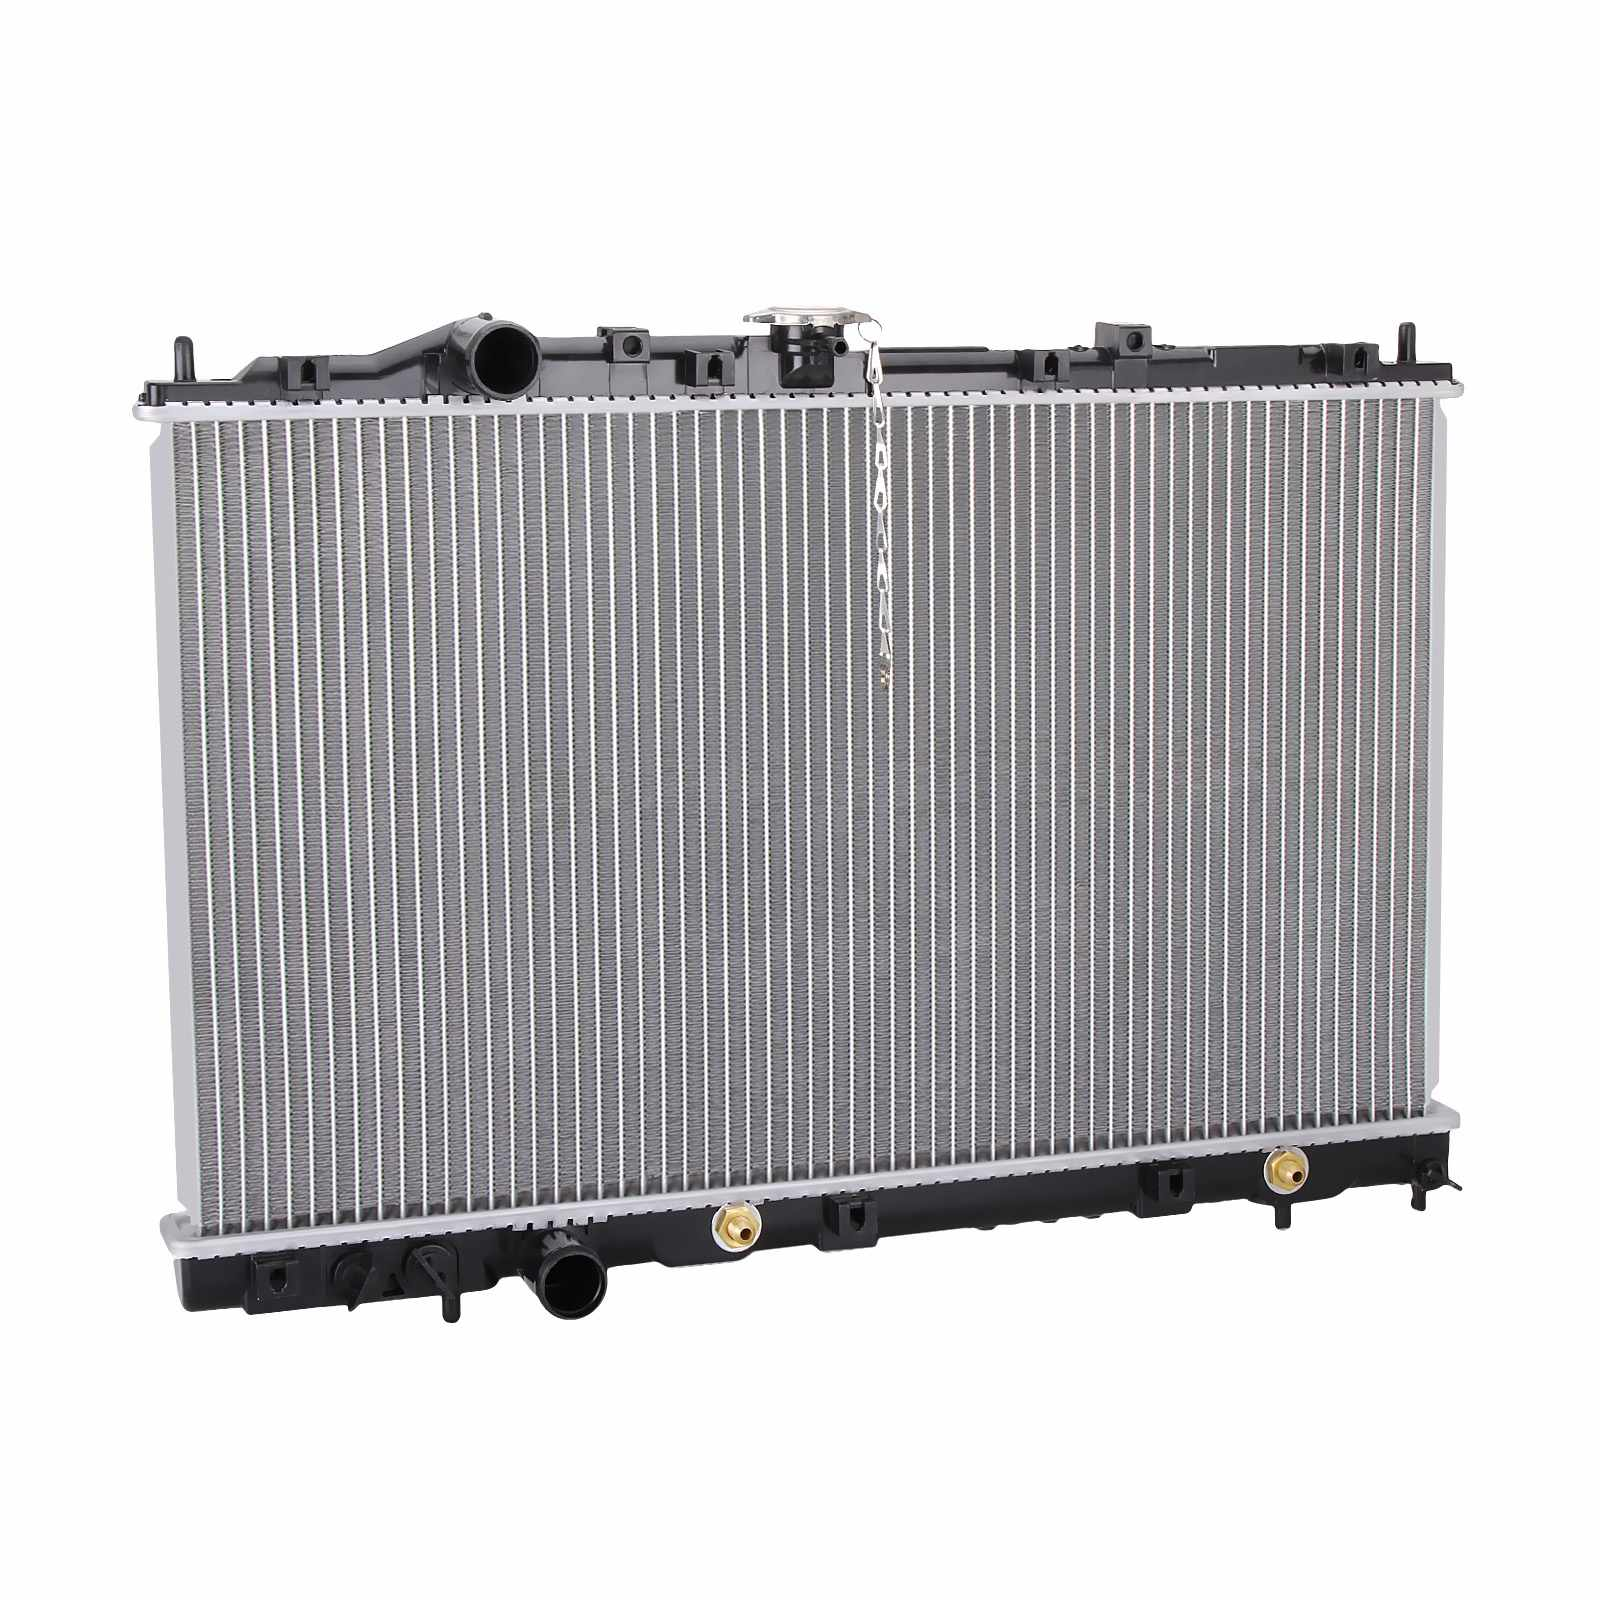 Radiator Mitsubishi Lancer CE Sedan Coupe Mirage CE 1.5/1.8L 5/1996-7/2003 AT/MT